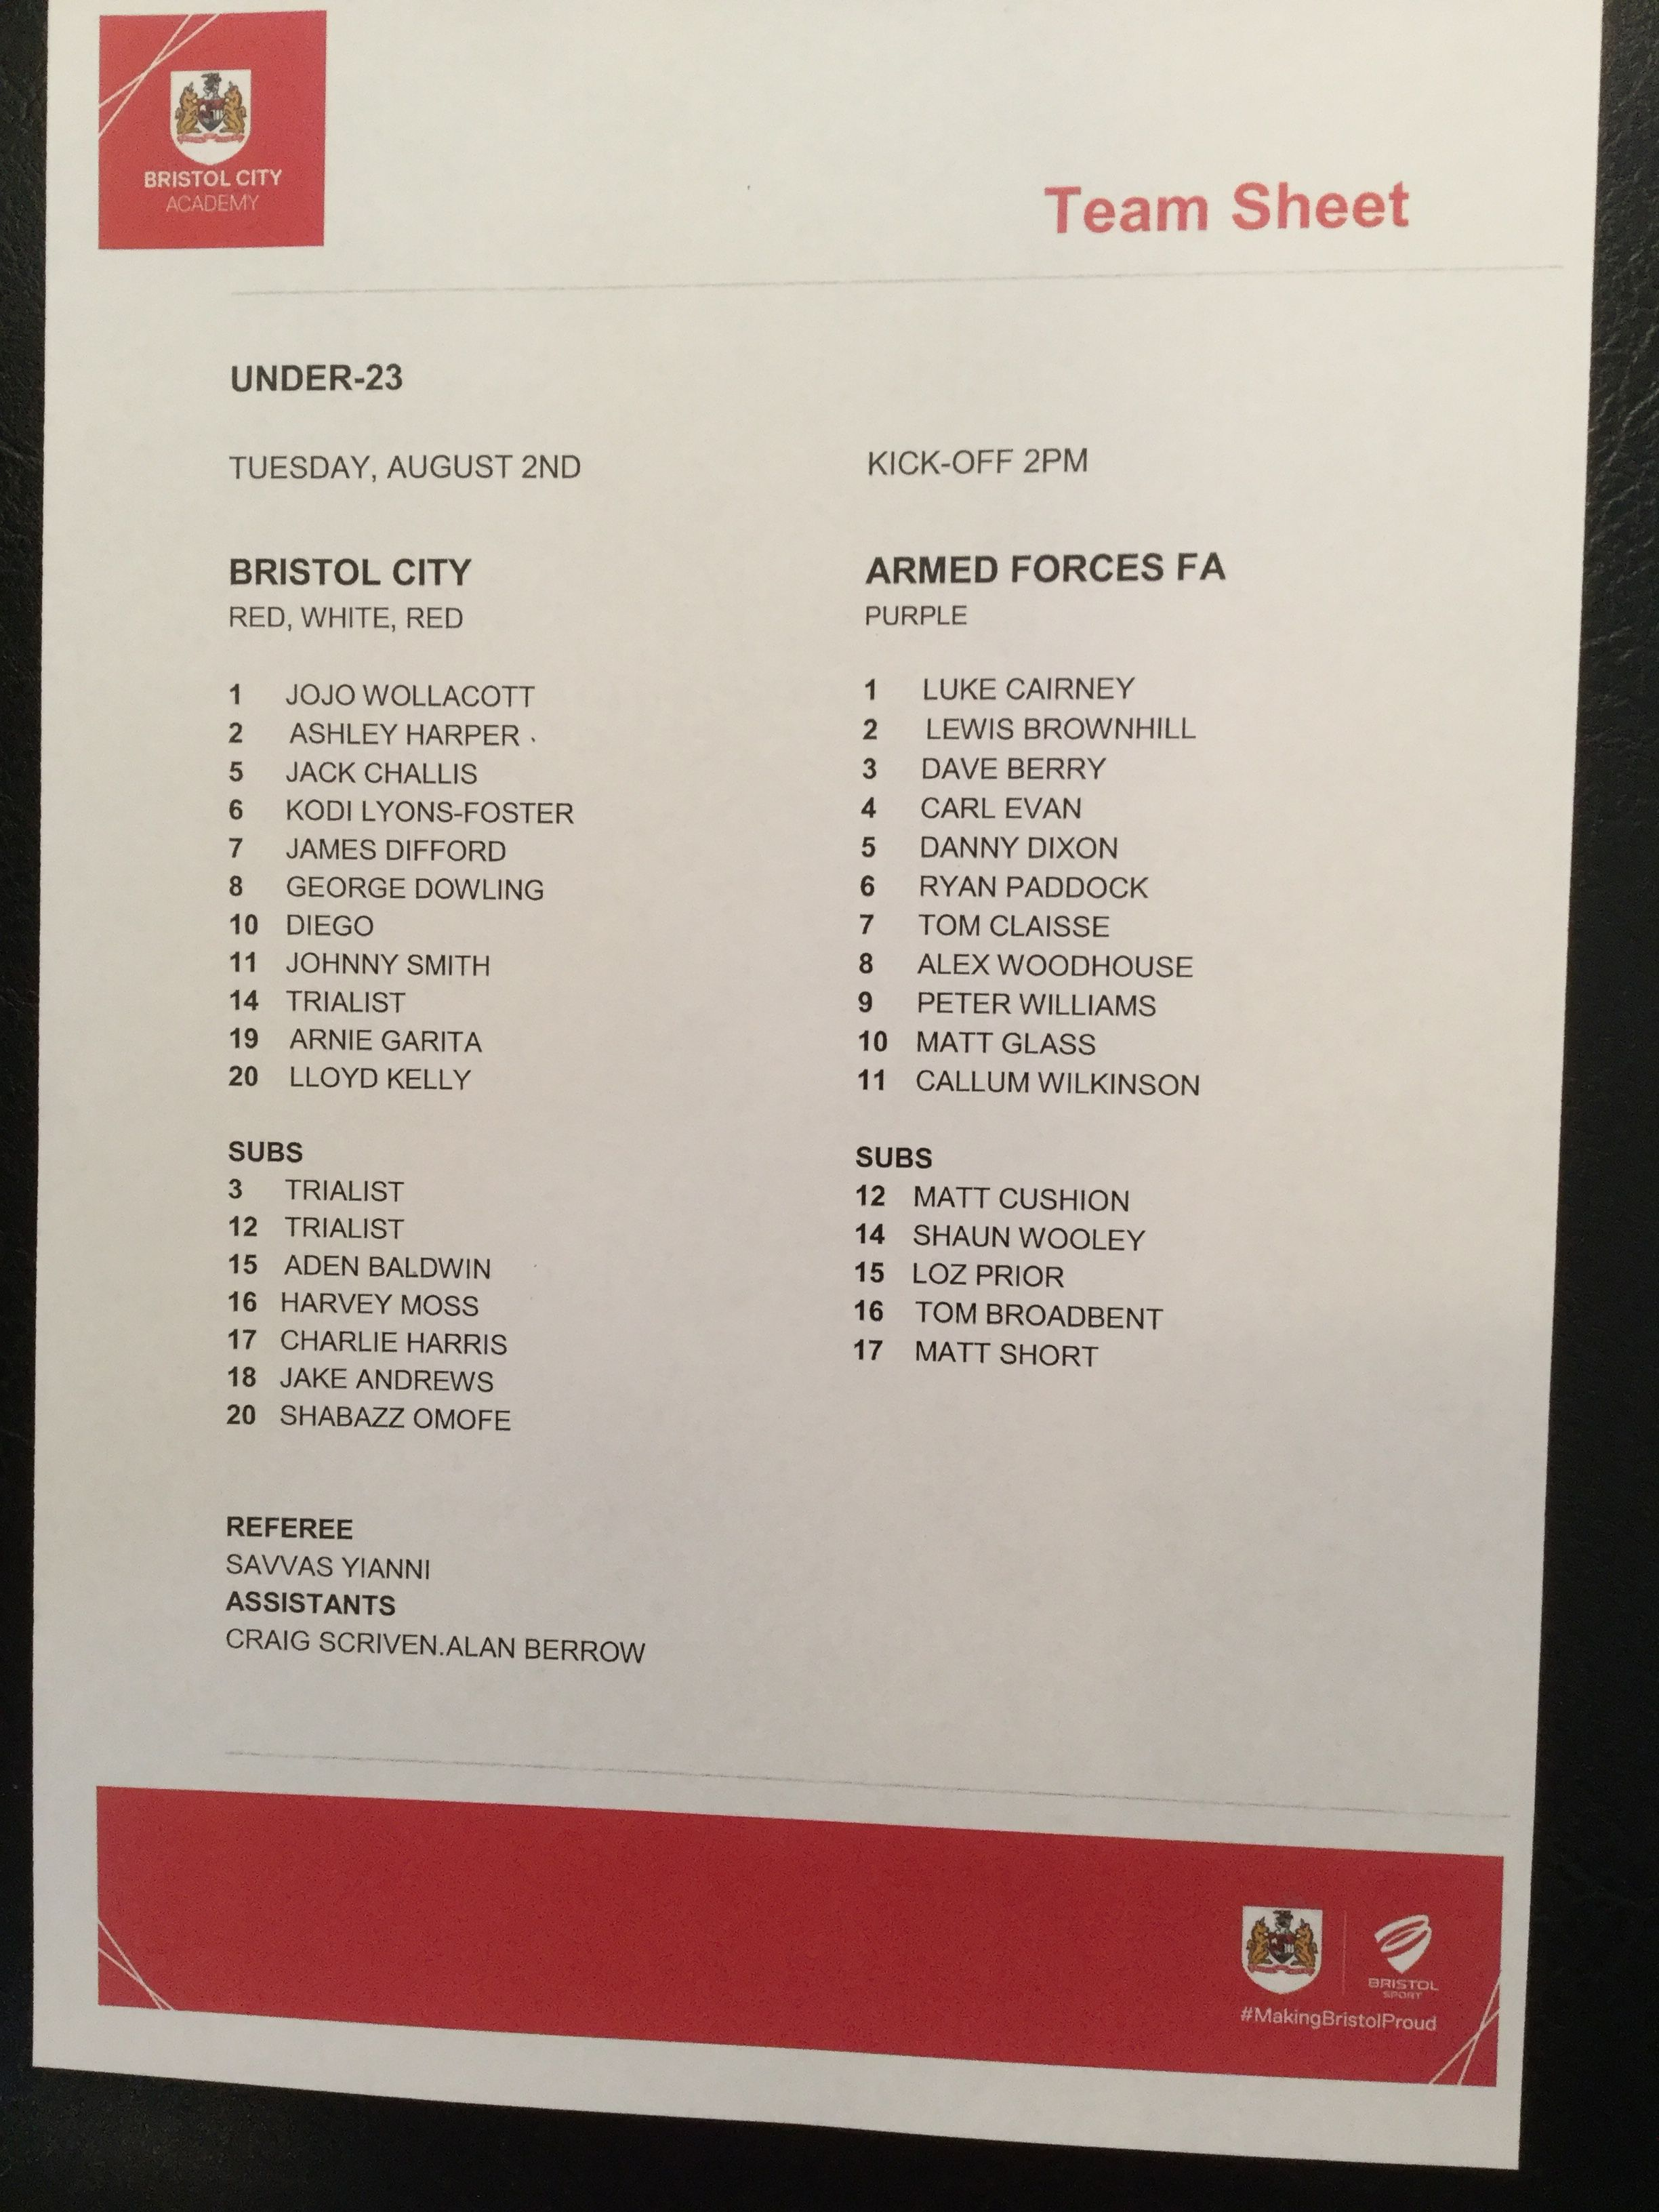 Bristol City v Armed Forces FA 02-08-16 Team Sheet